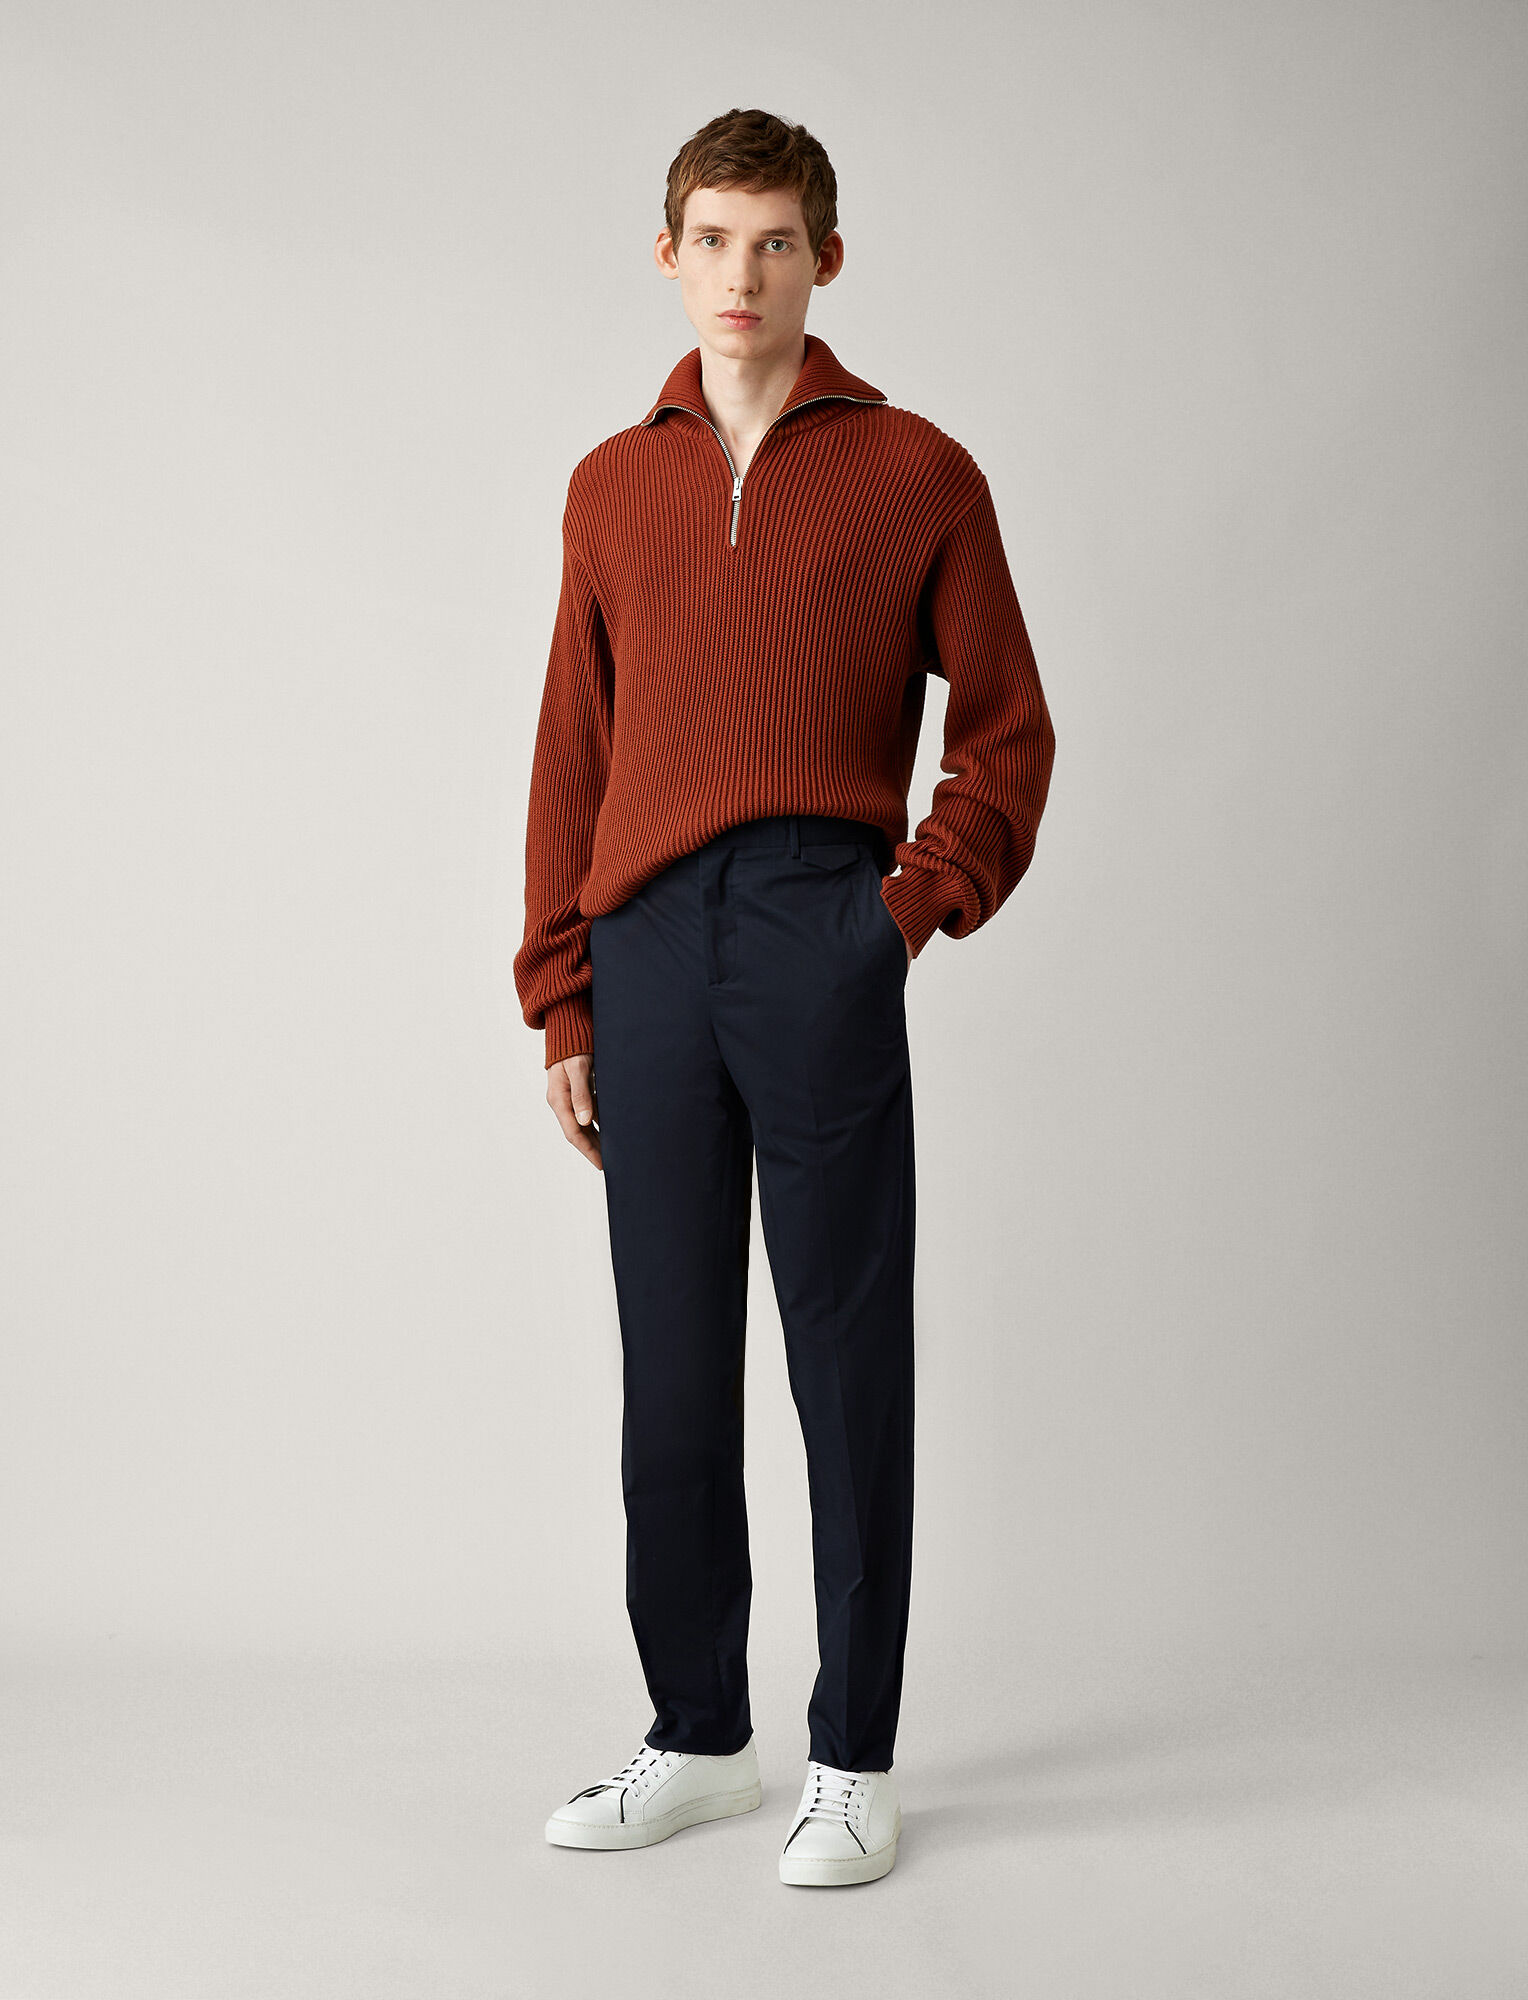 Joseph, Emmanuel Fine Gabardine Stretch Trousers, in NAVY